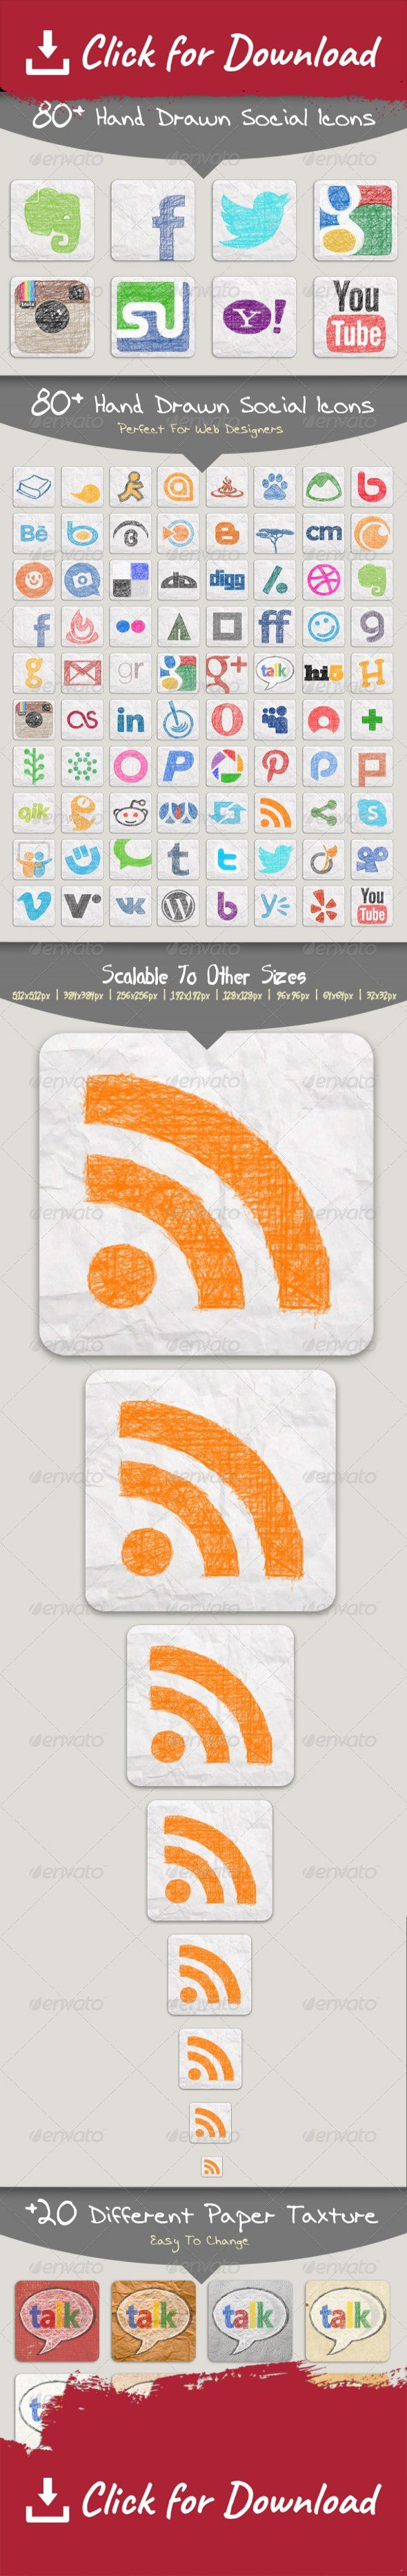 behance, blogger, digg, facebook, flickr, github, gmail, google plus, hand drawn, hi5, icon, last.fm, linkedin, myopera, paper texture, psd, reddit, renren, rss, skype, social media, social network, stumbleupon, technorati, tumblre, twitter, twitter bird, web, yahoo, youtube 82 Hand drawn social network icons, with 20 different background paper texture. 100% layerd PSD file, easy to customize and edit with any version of photoshop.   Included Icons:   Academia Anobii AOL Asianave Athlinks…